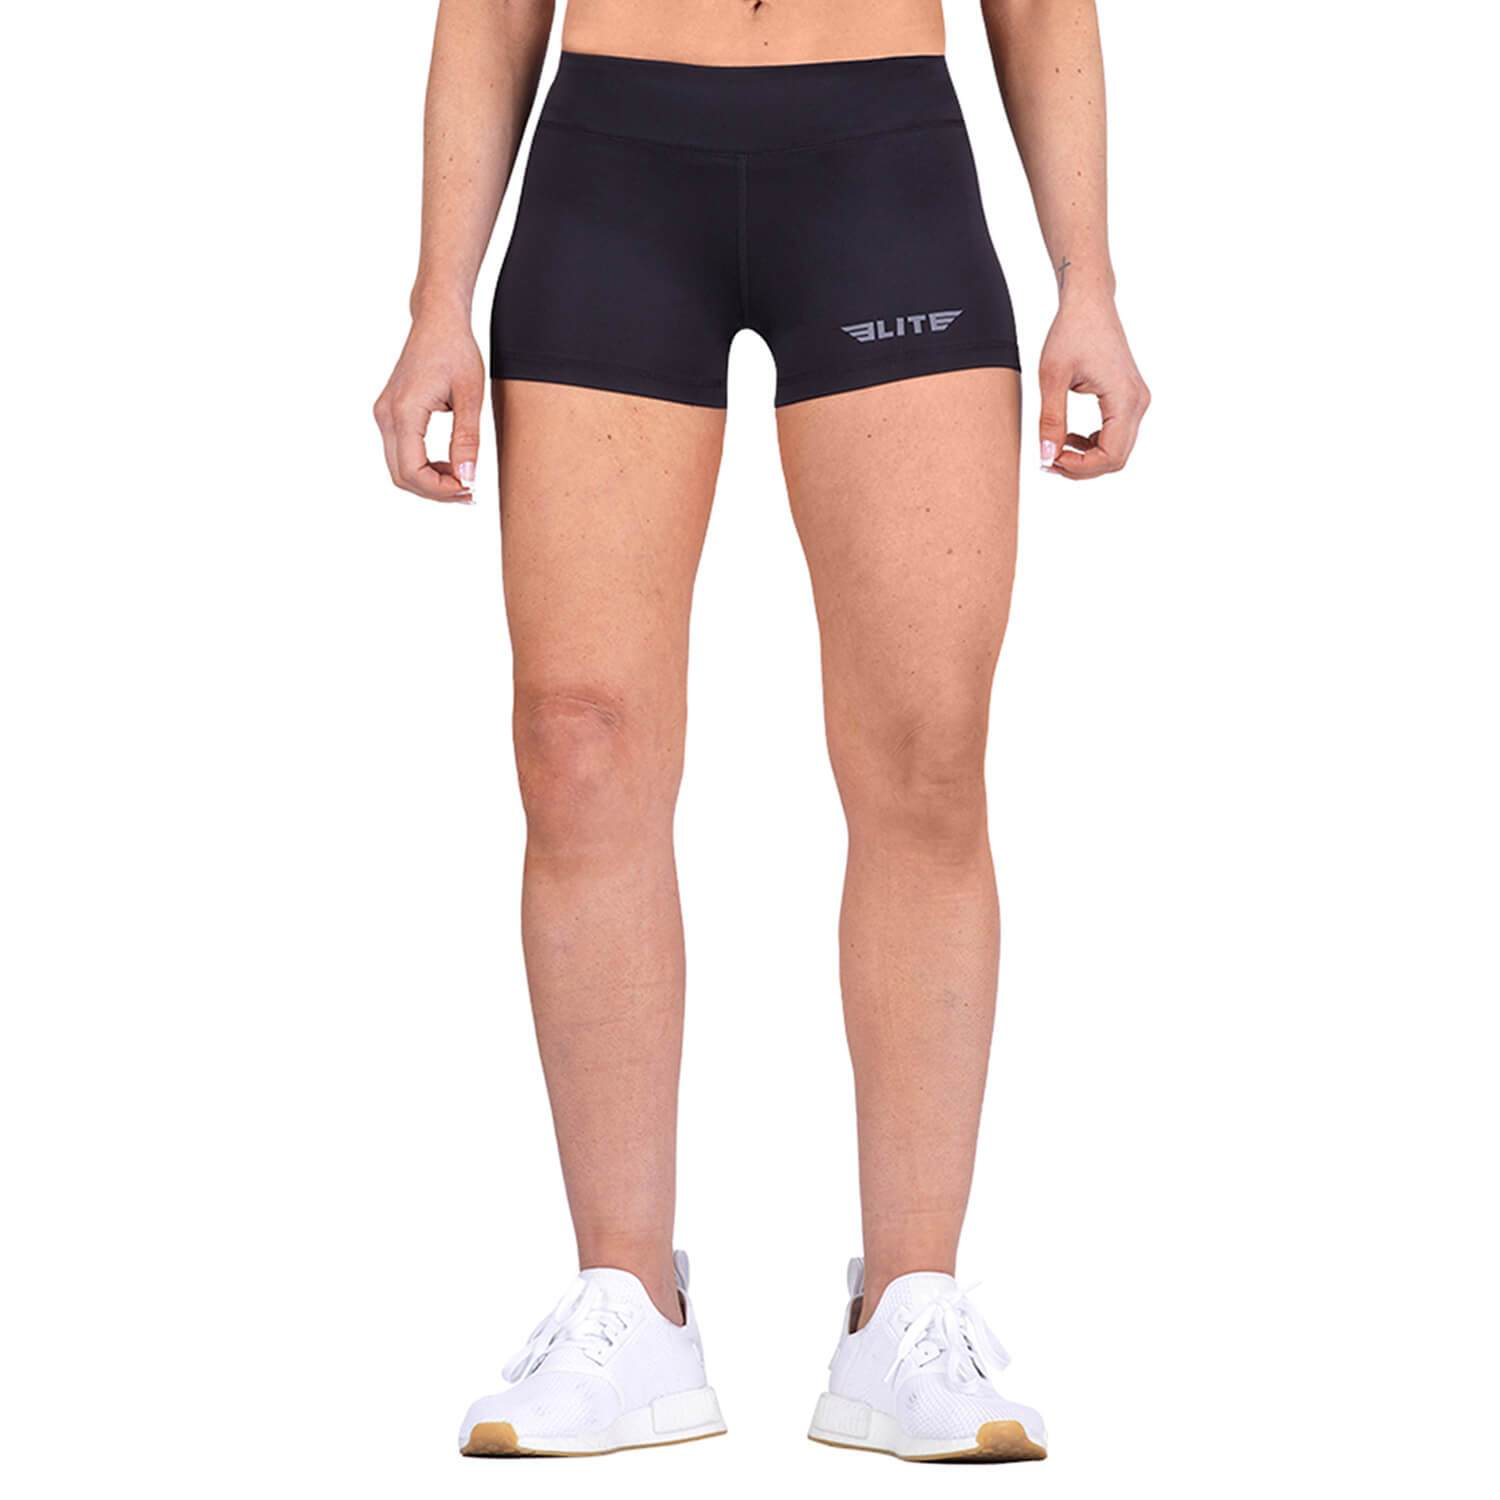 Elite Sports Women Plain Black Crossfit Shorts